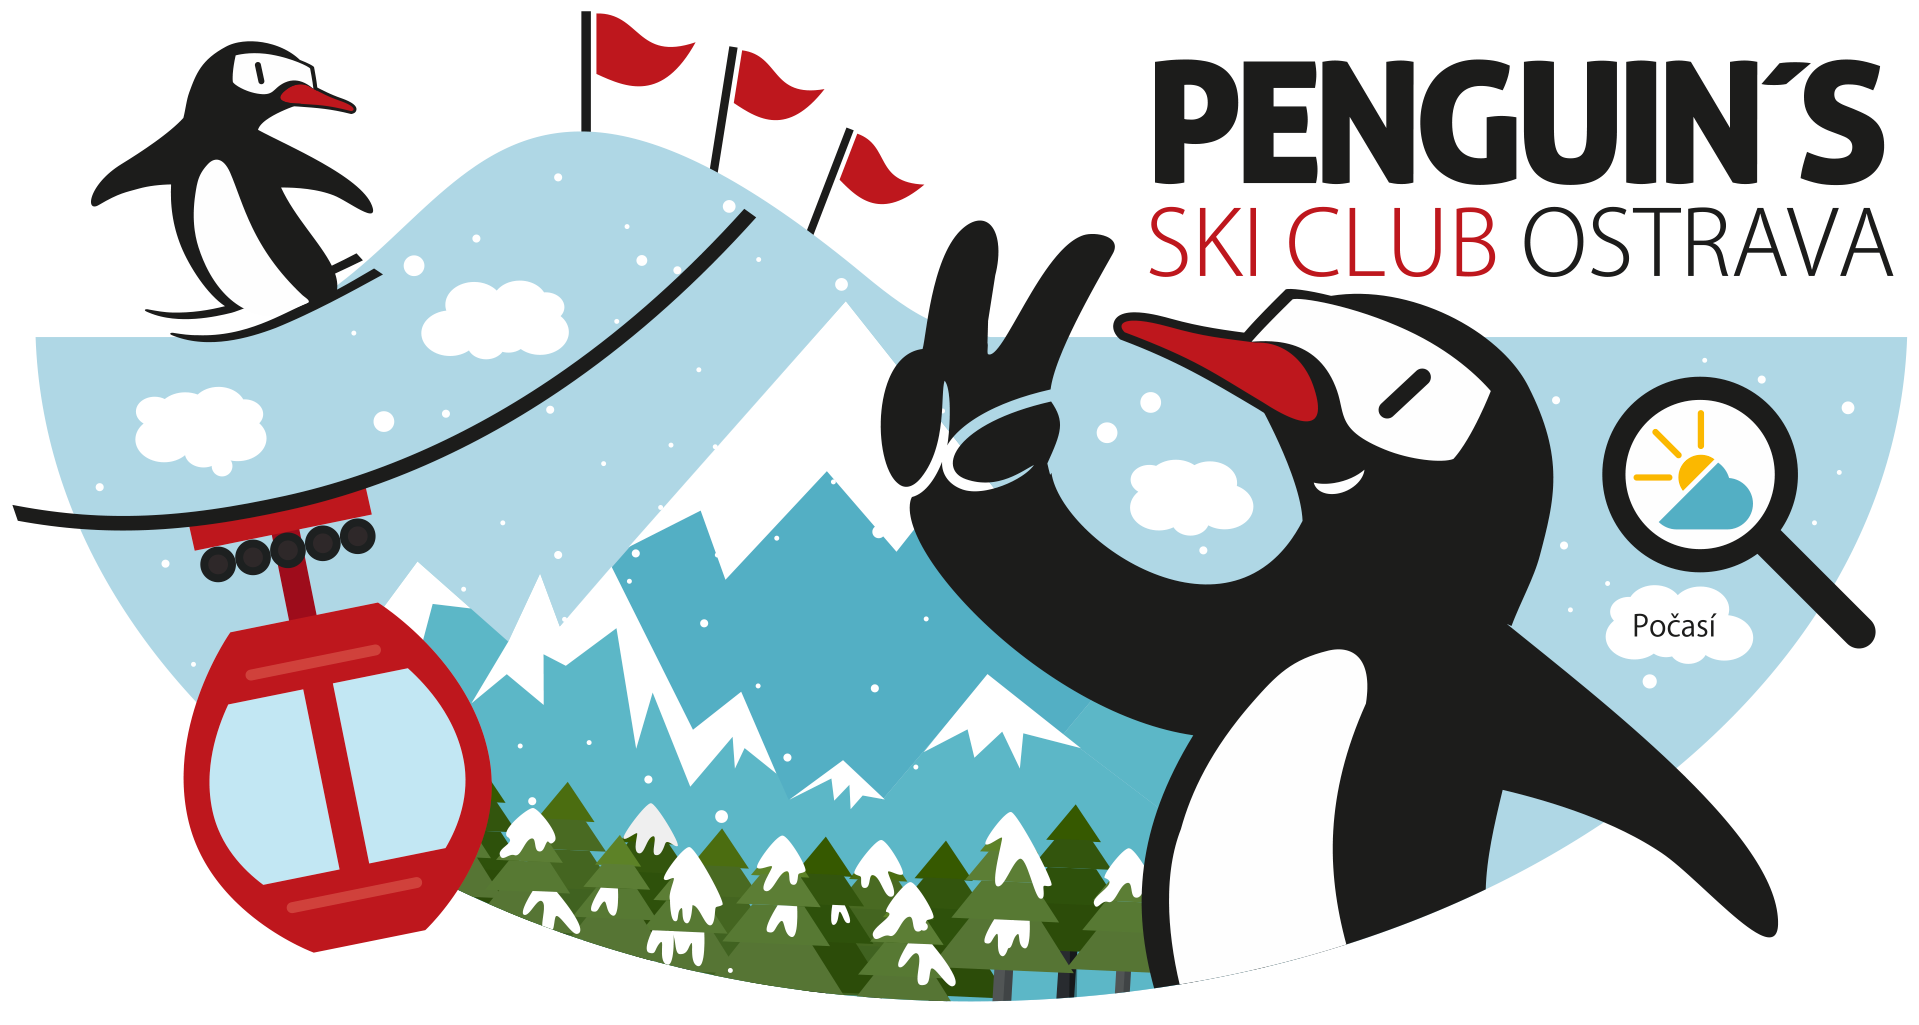 Penguin's Ski Club header image